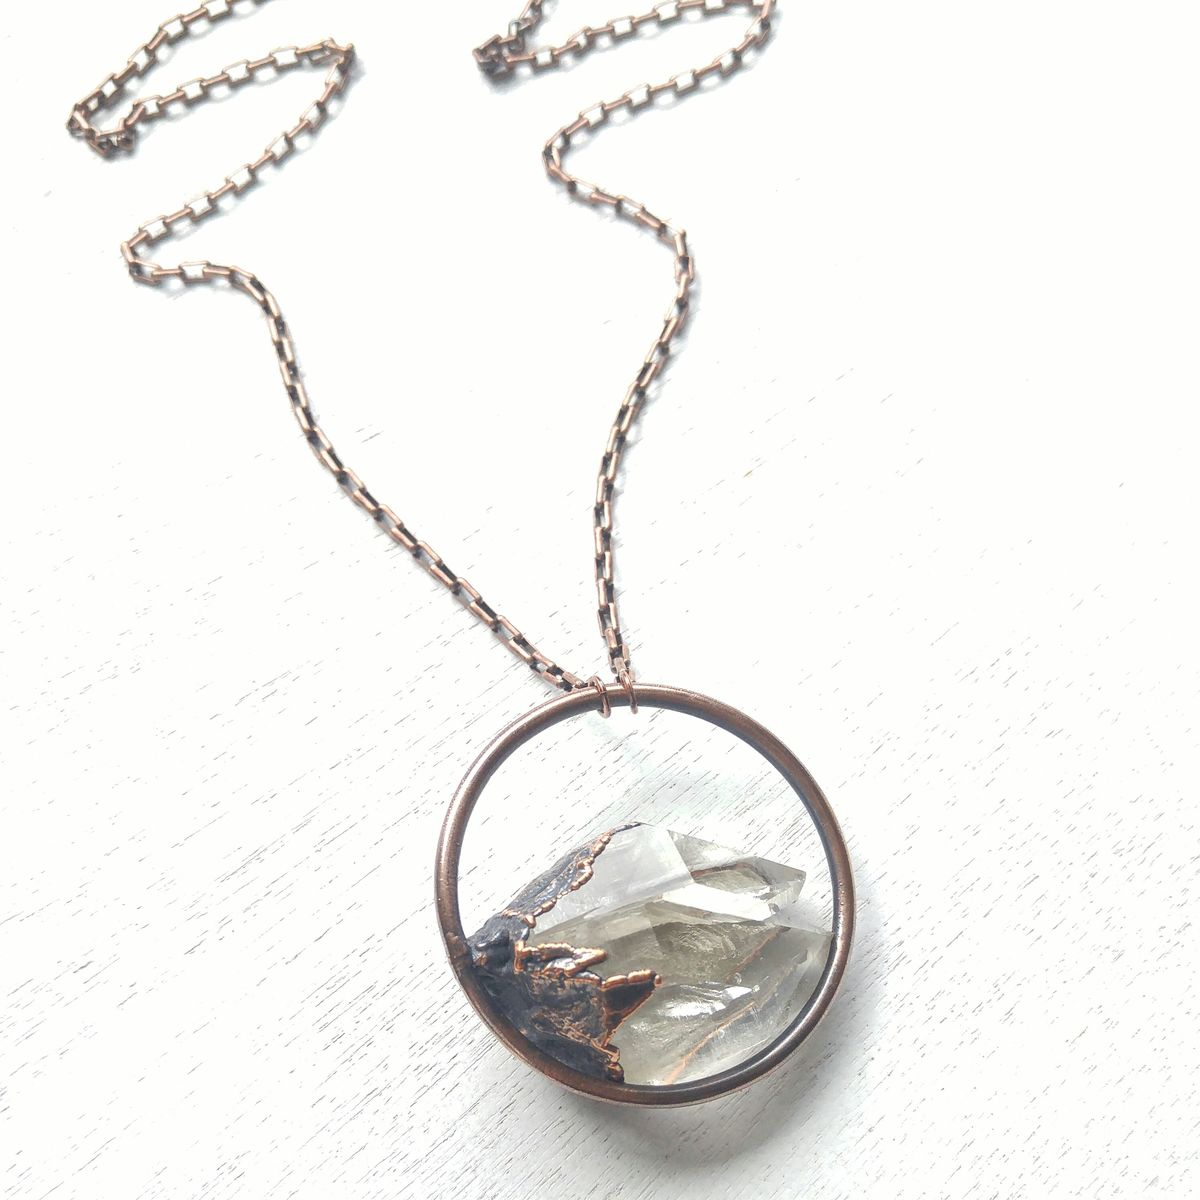 Quartz Twin Orb Necklace - product images  of